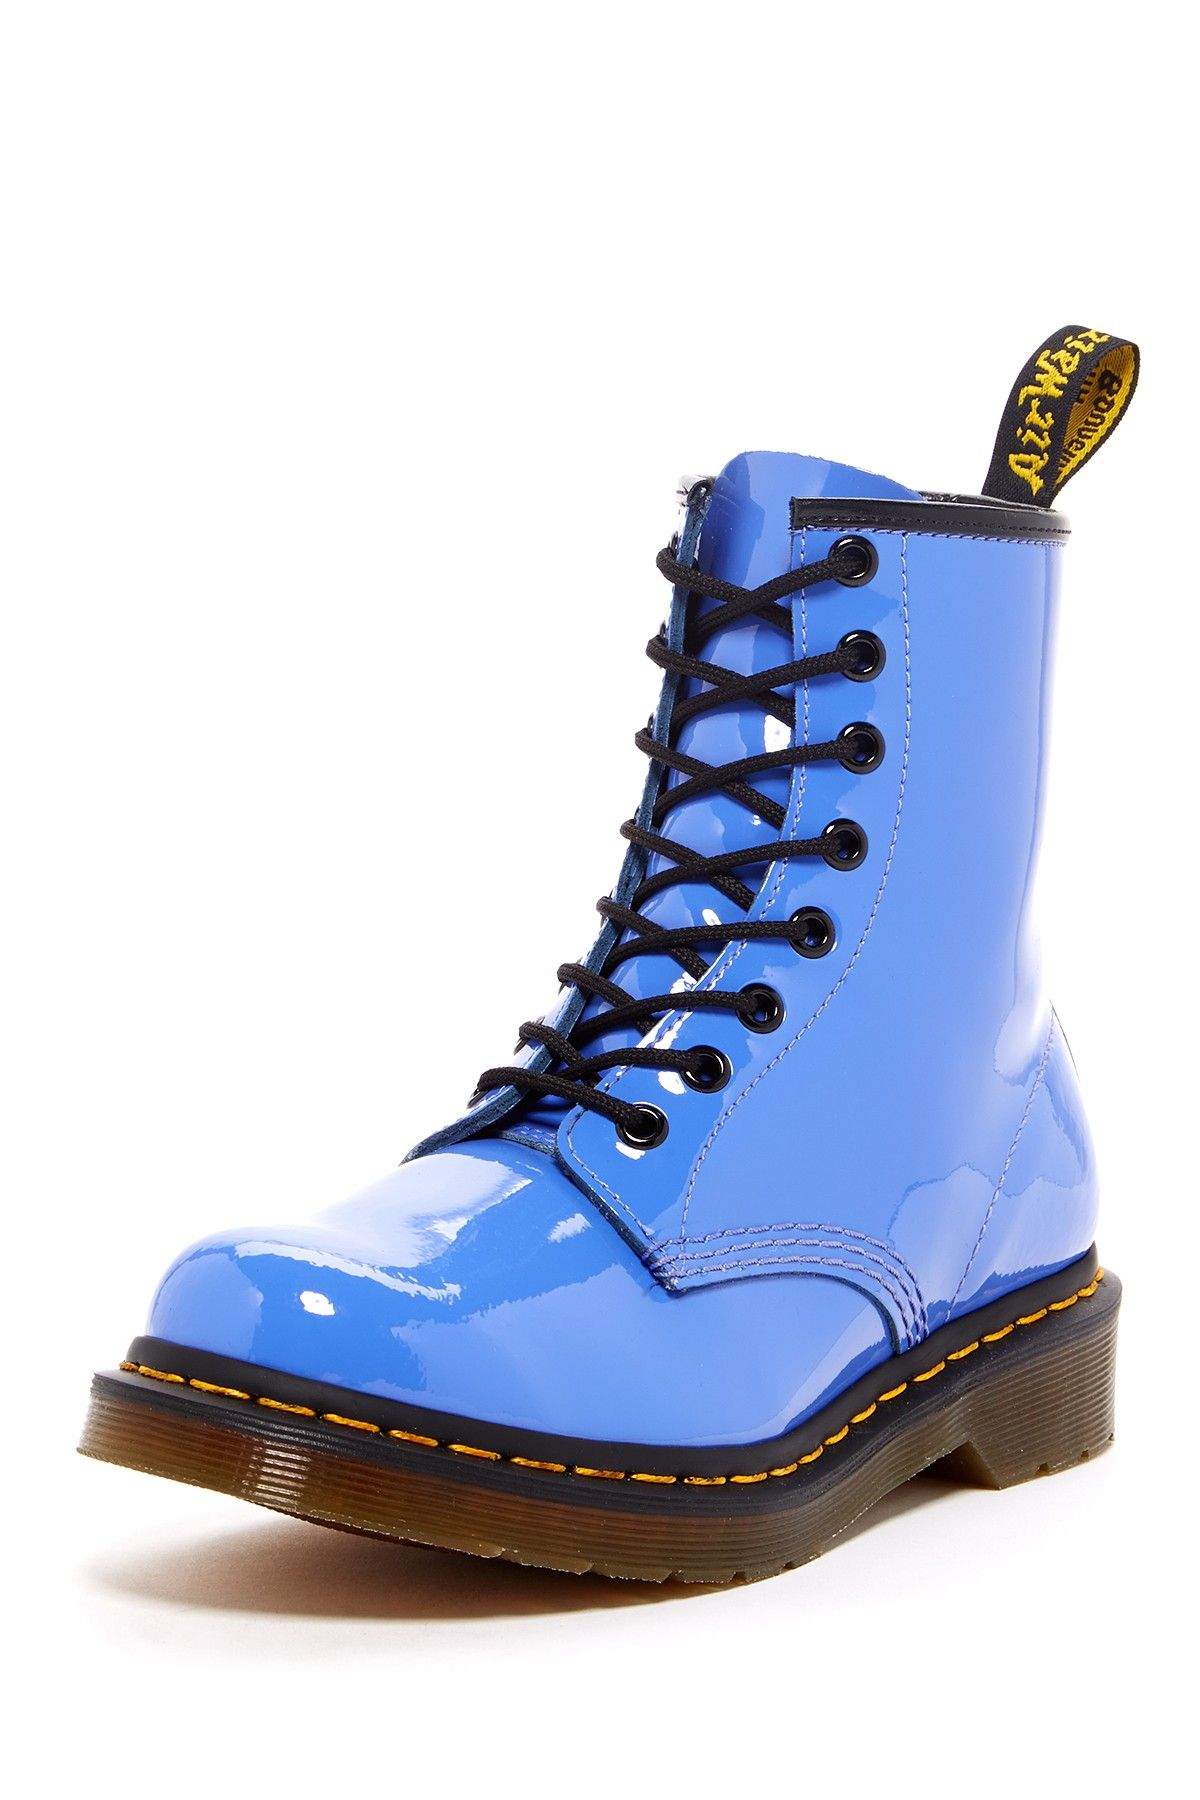 Dr Martens Dr Martens 1460 W Lace Up Boot Nordstrom Rack Boots Doc Martens Boots Lace Up Boots